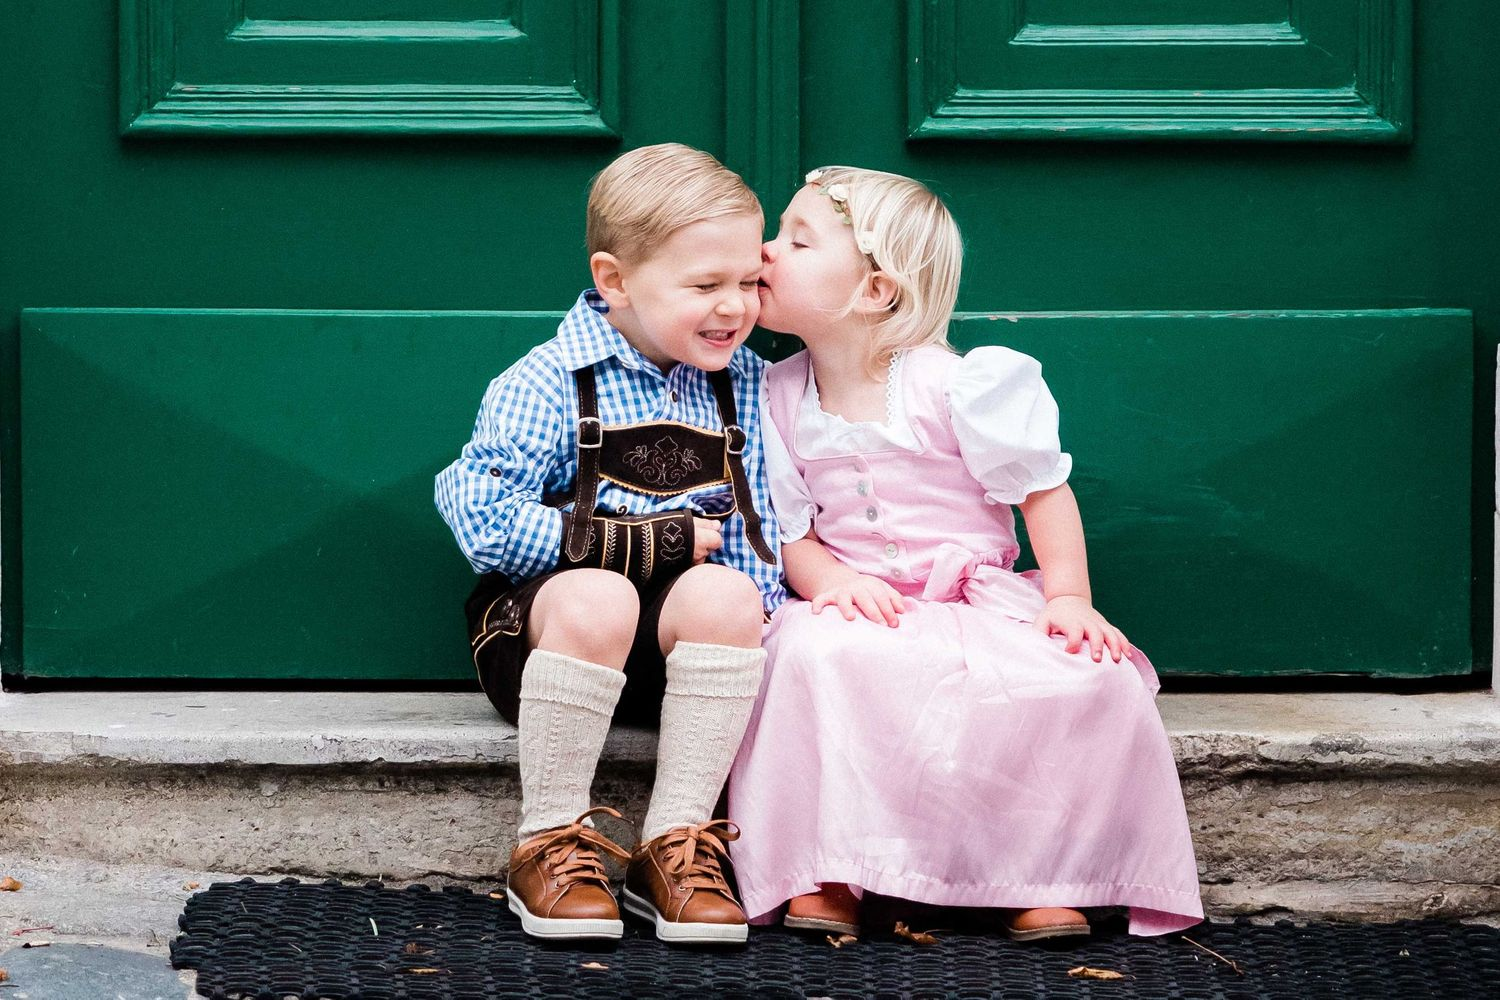 Children sitting in Vienna in front of a green door wearing traditional outfit Lederhosen and Dirndl